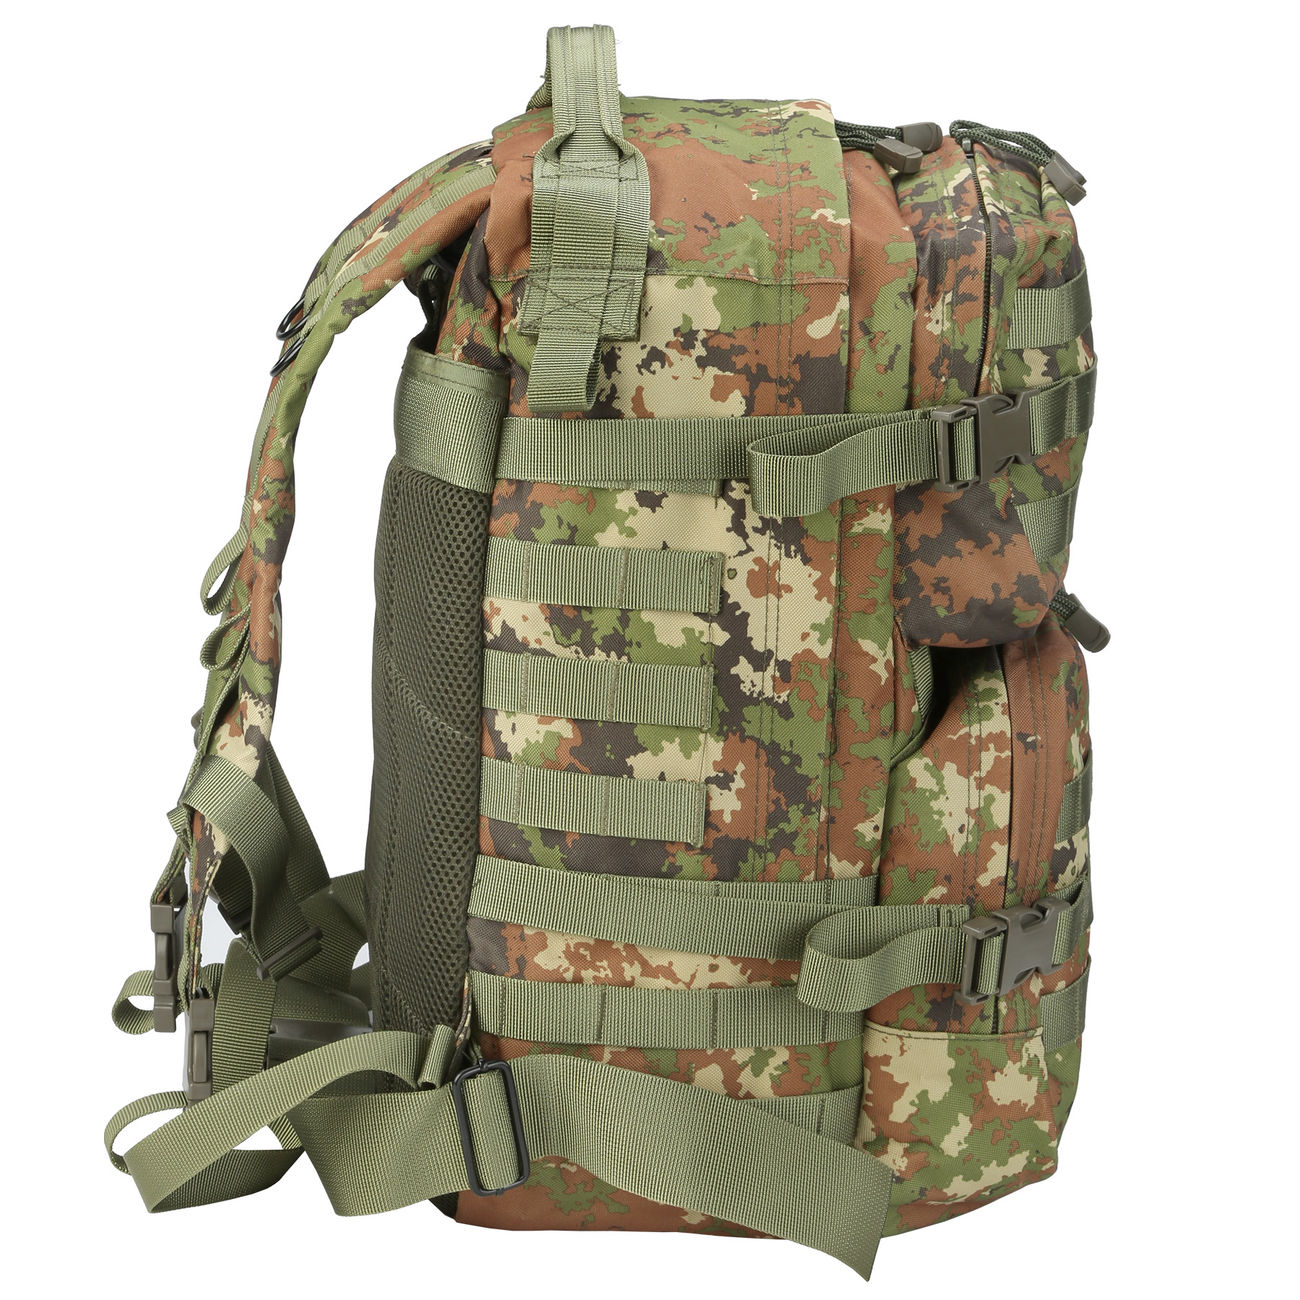 MFH Rucksack US Assault II vegetato 1